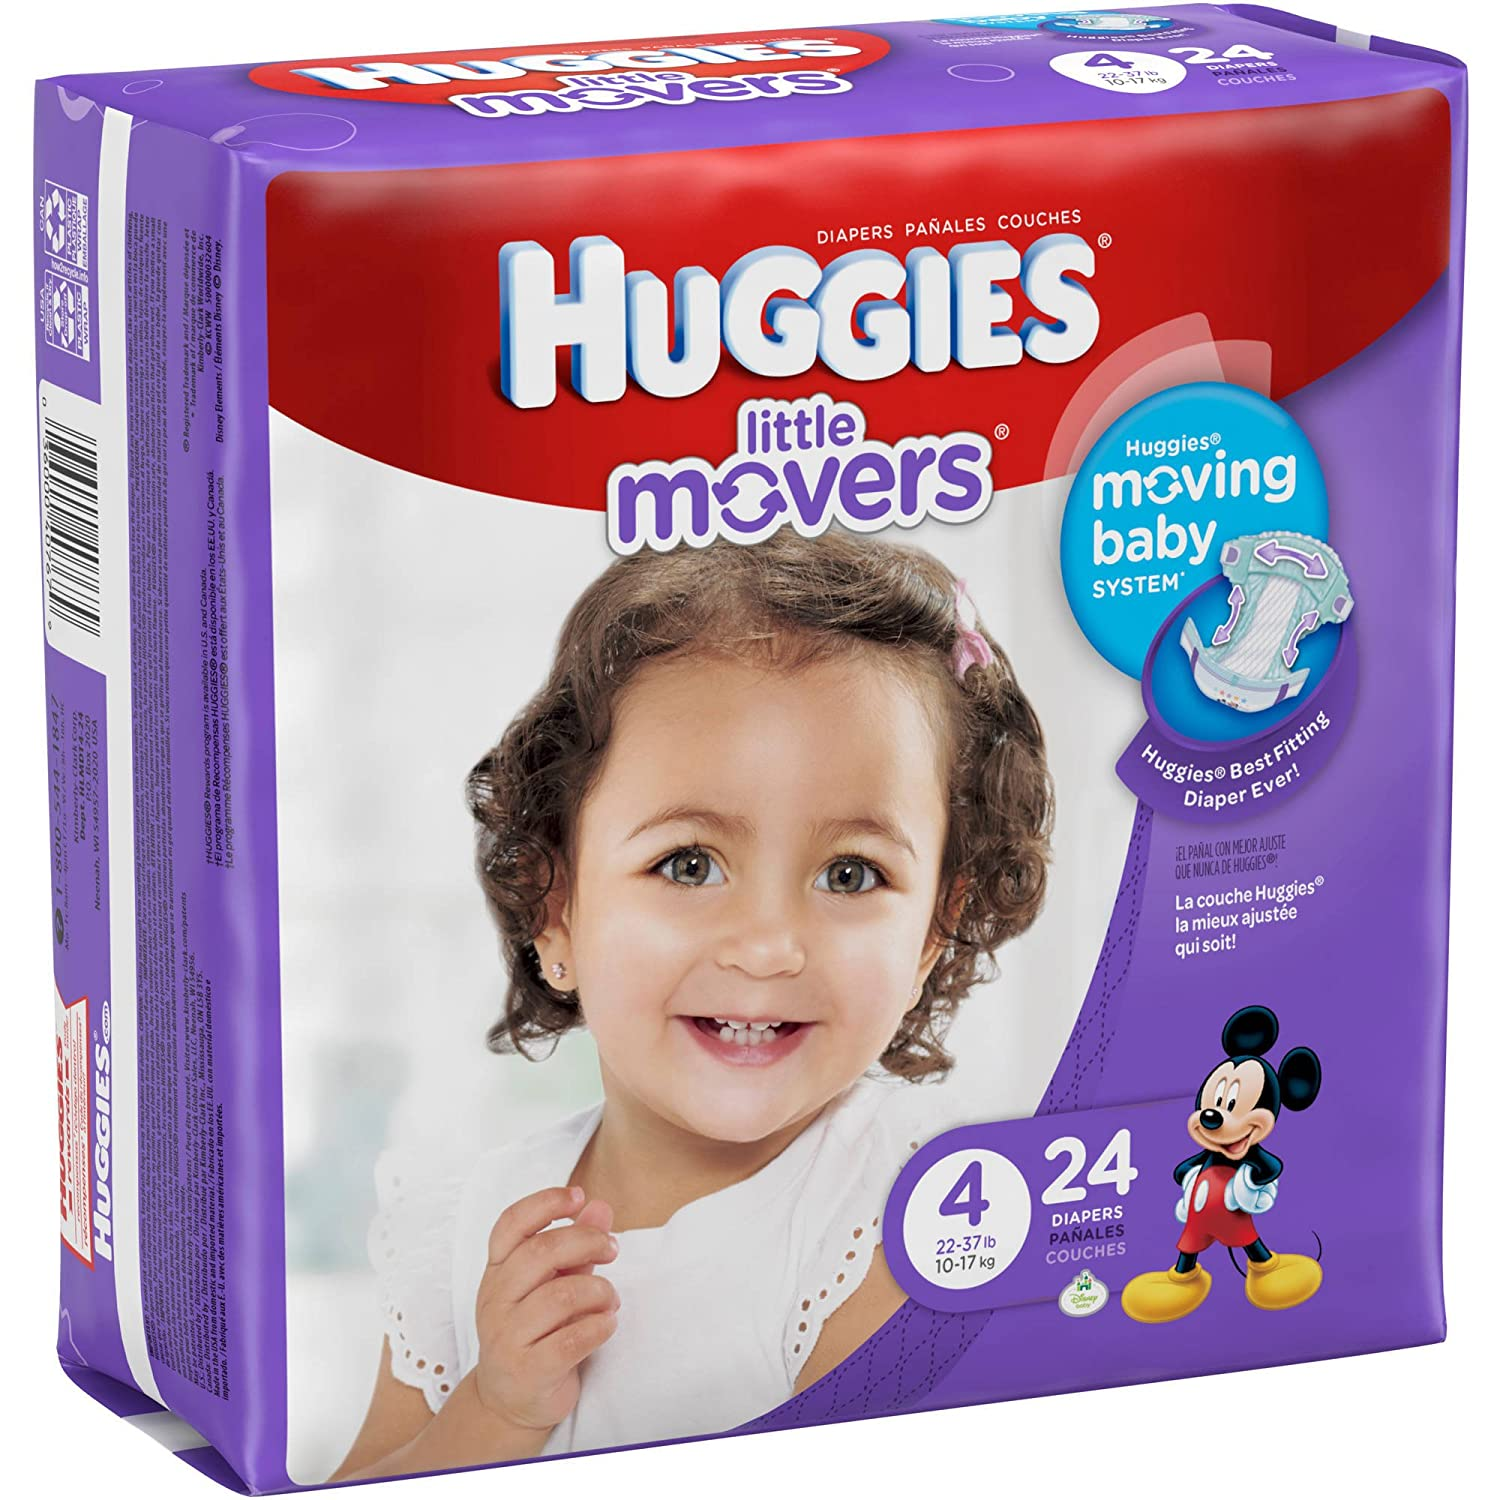 Amazon.com: Branded HUGGIES Little Movers Diapers, Size 4, 24 Diapers, Weight 22-37lbs - Branded Diapers with fast delivery (Soft and Comfortable for ...